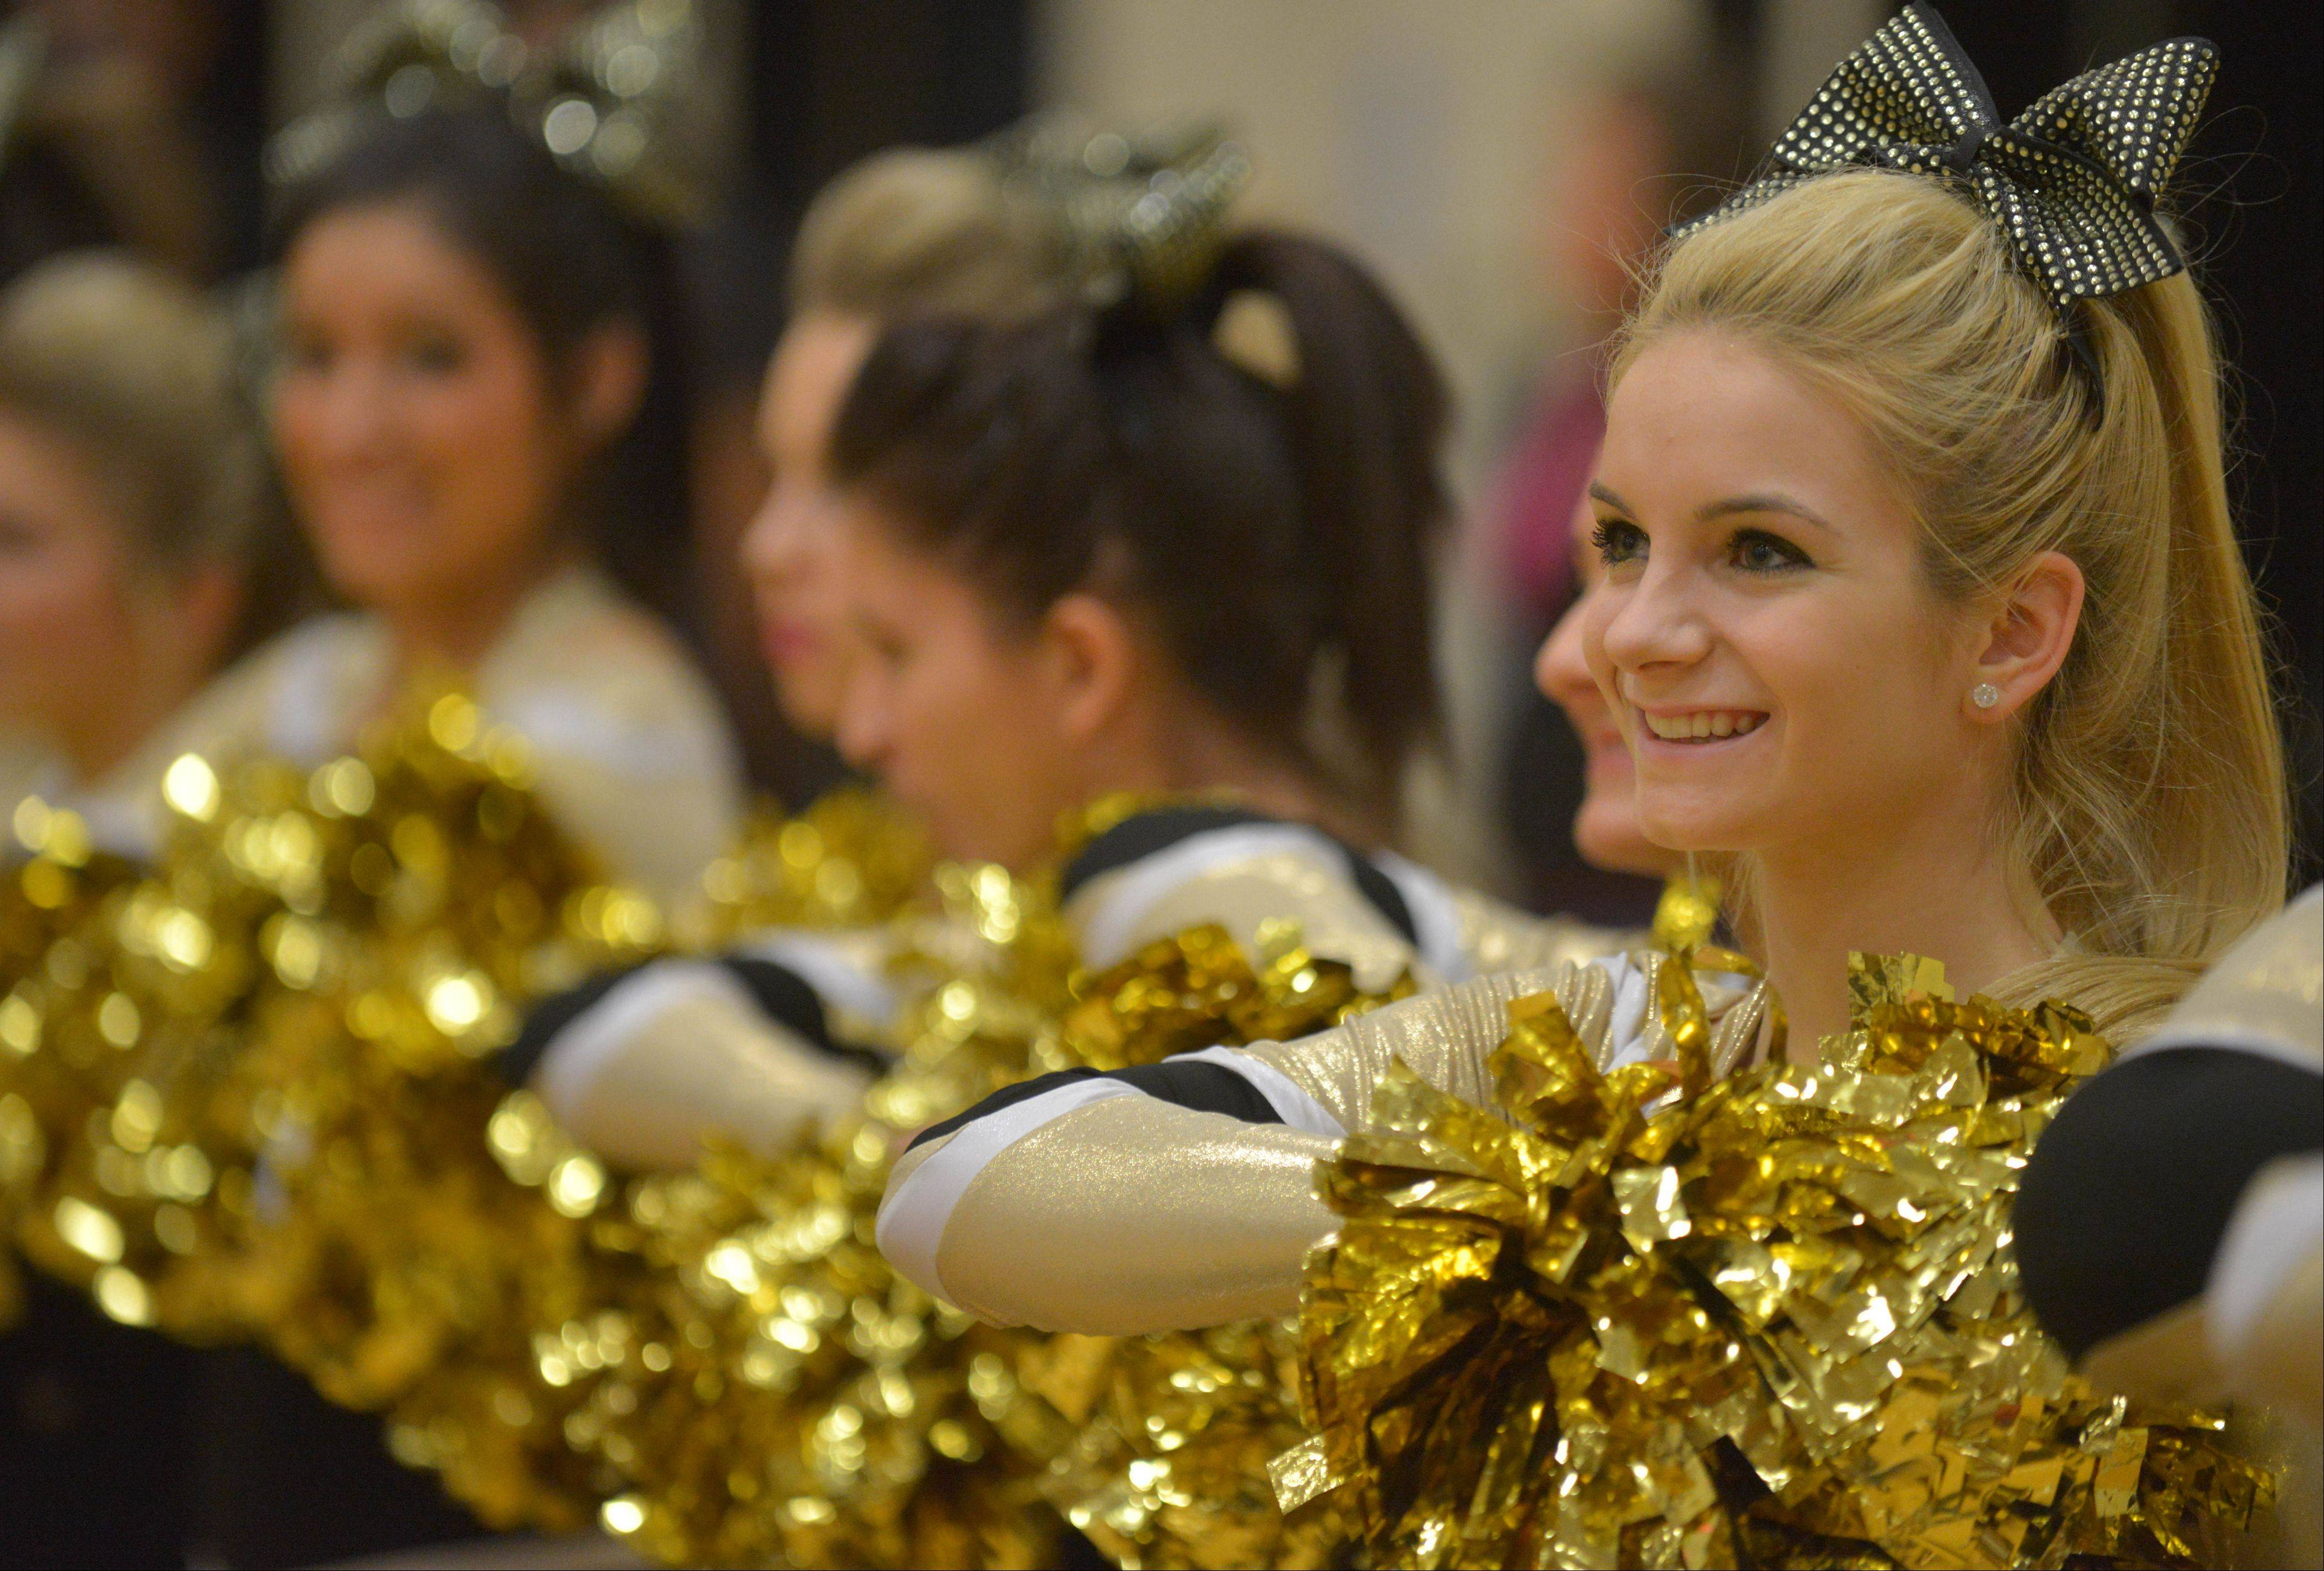 Photos from the Lake Park at Glenbard North boys basketball game Friday, Dec. 13.